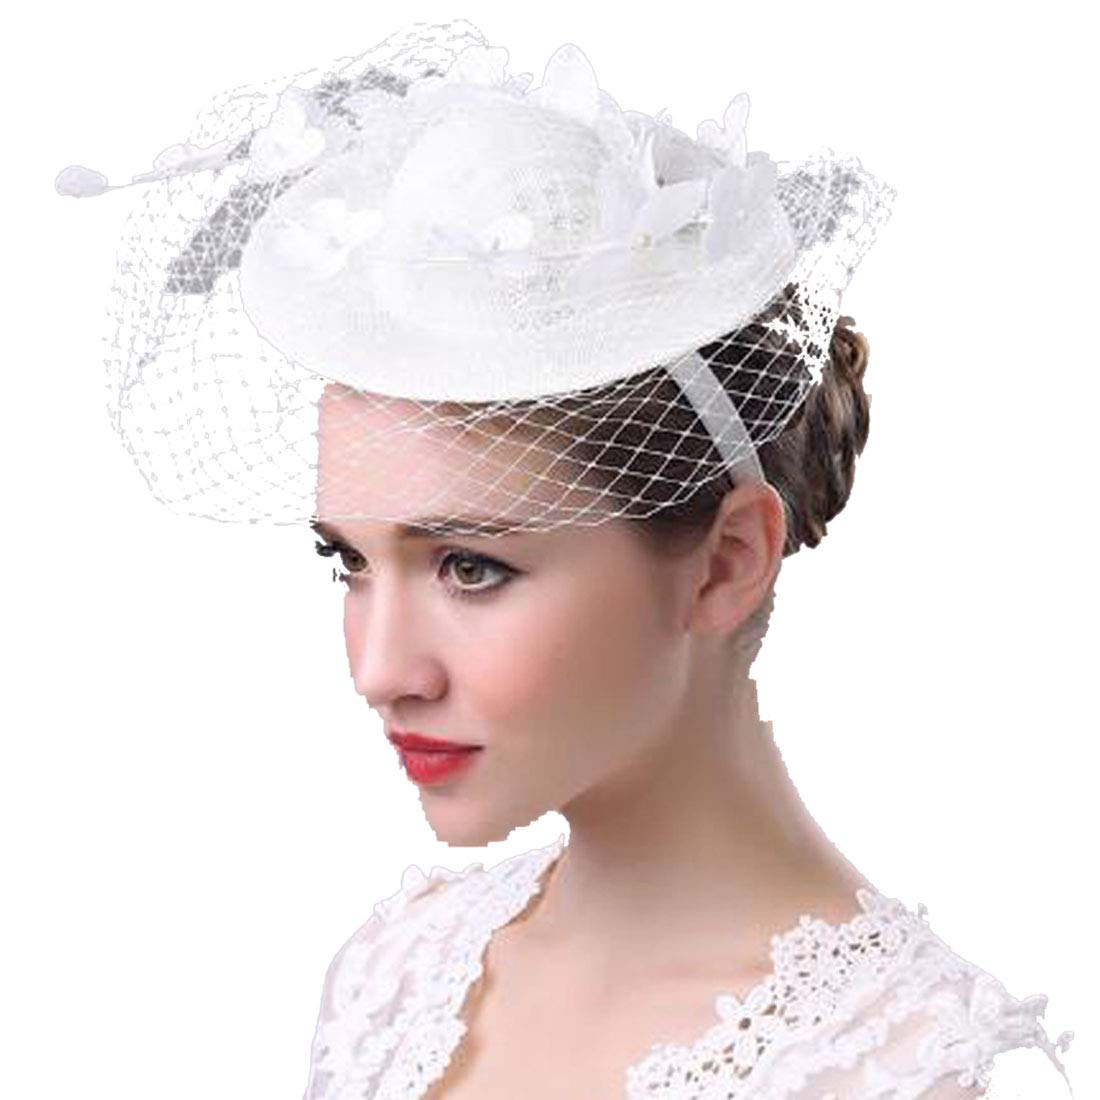 0b5ccd1f Gtopart Tea Party Hat Women's Fascinators Flower Feather Wedding Hat with  Veil HLM02 at Amazon Women's Clothing store: